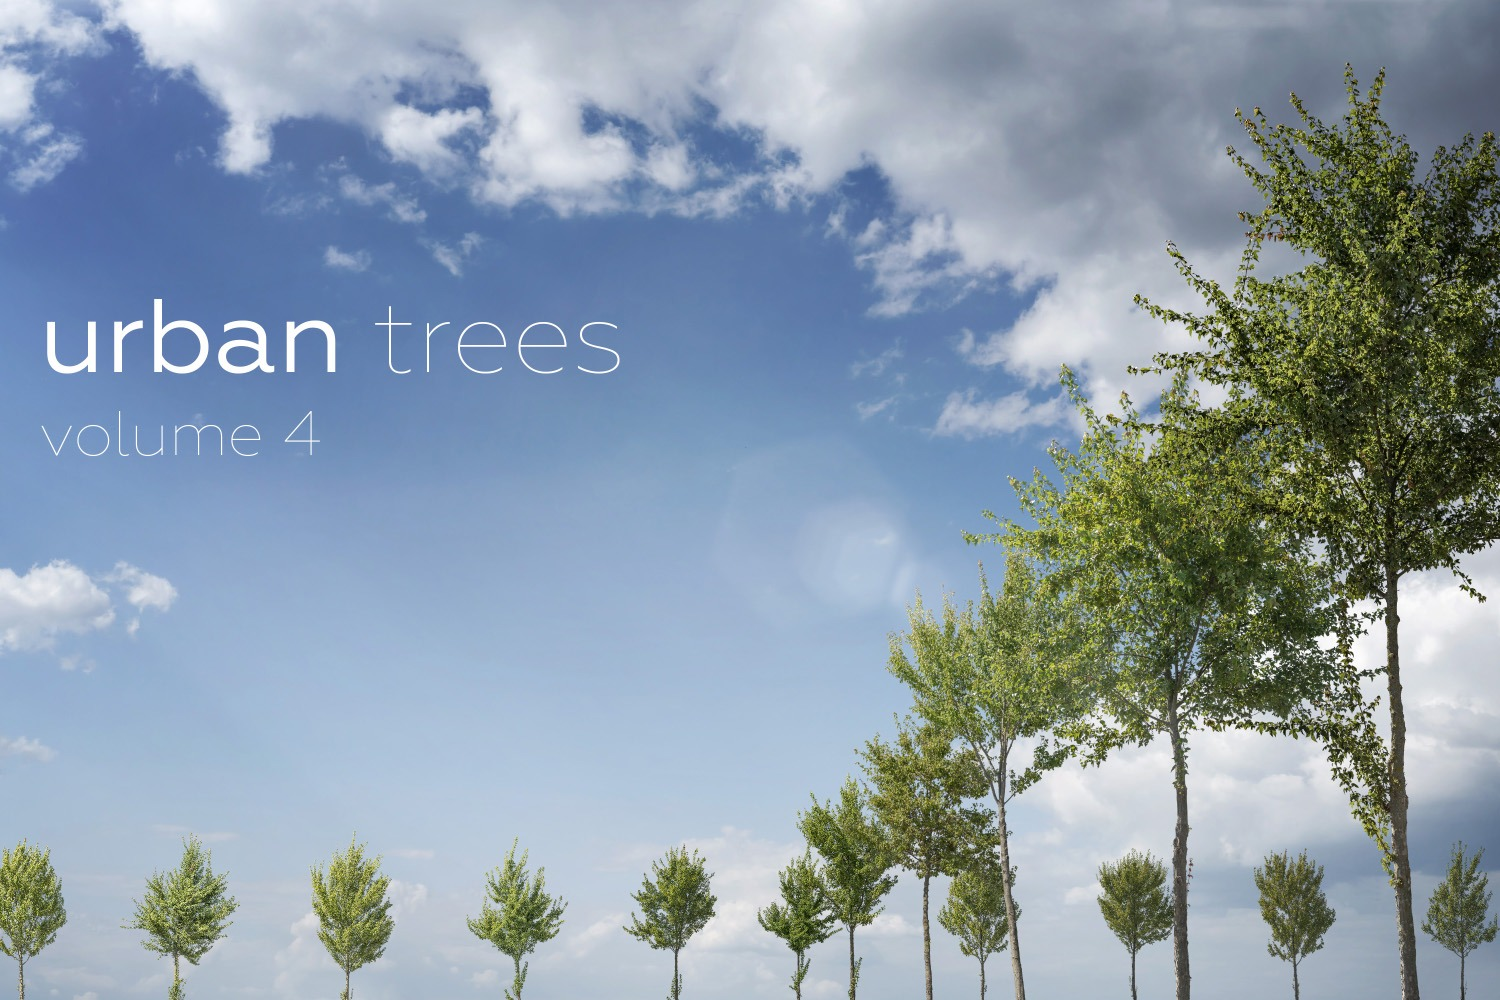 URBAN TREES Volume 4